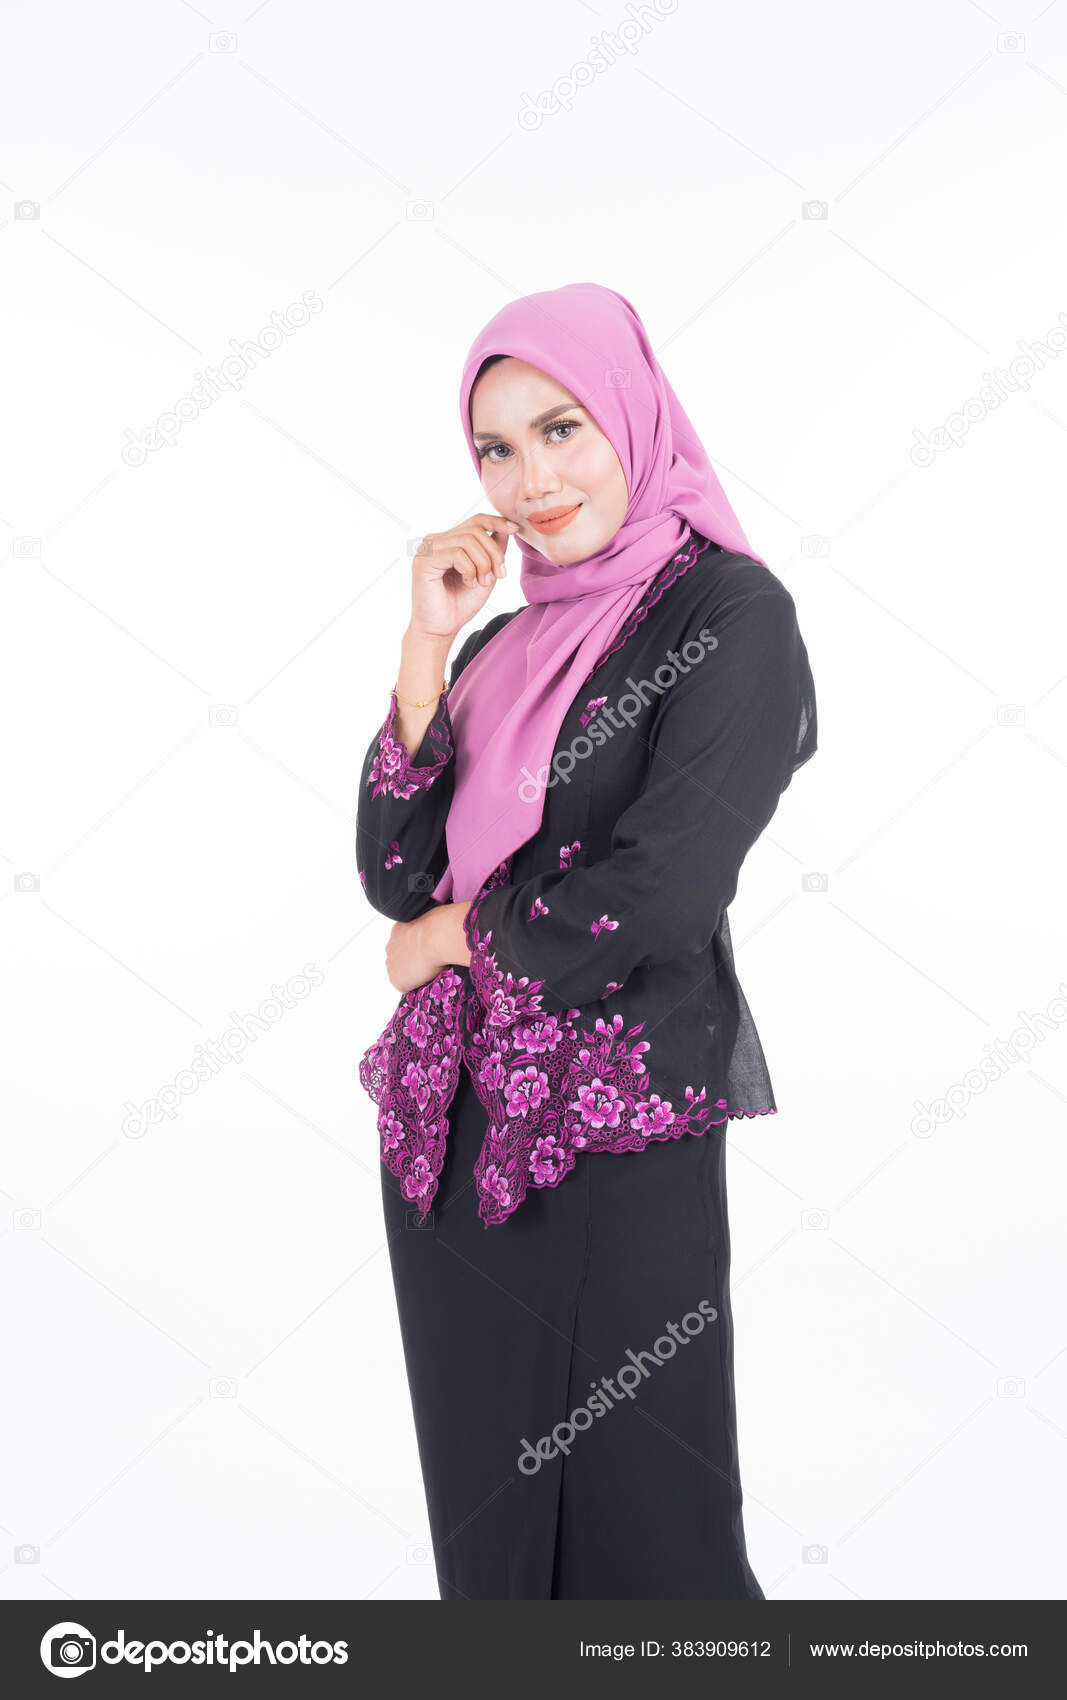 Beautiful female model in kebaya and hijab, a modern lifestyle apparel for  Muslim women isolated on white background. Beauty and hijab fashion